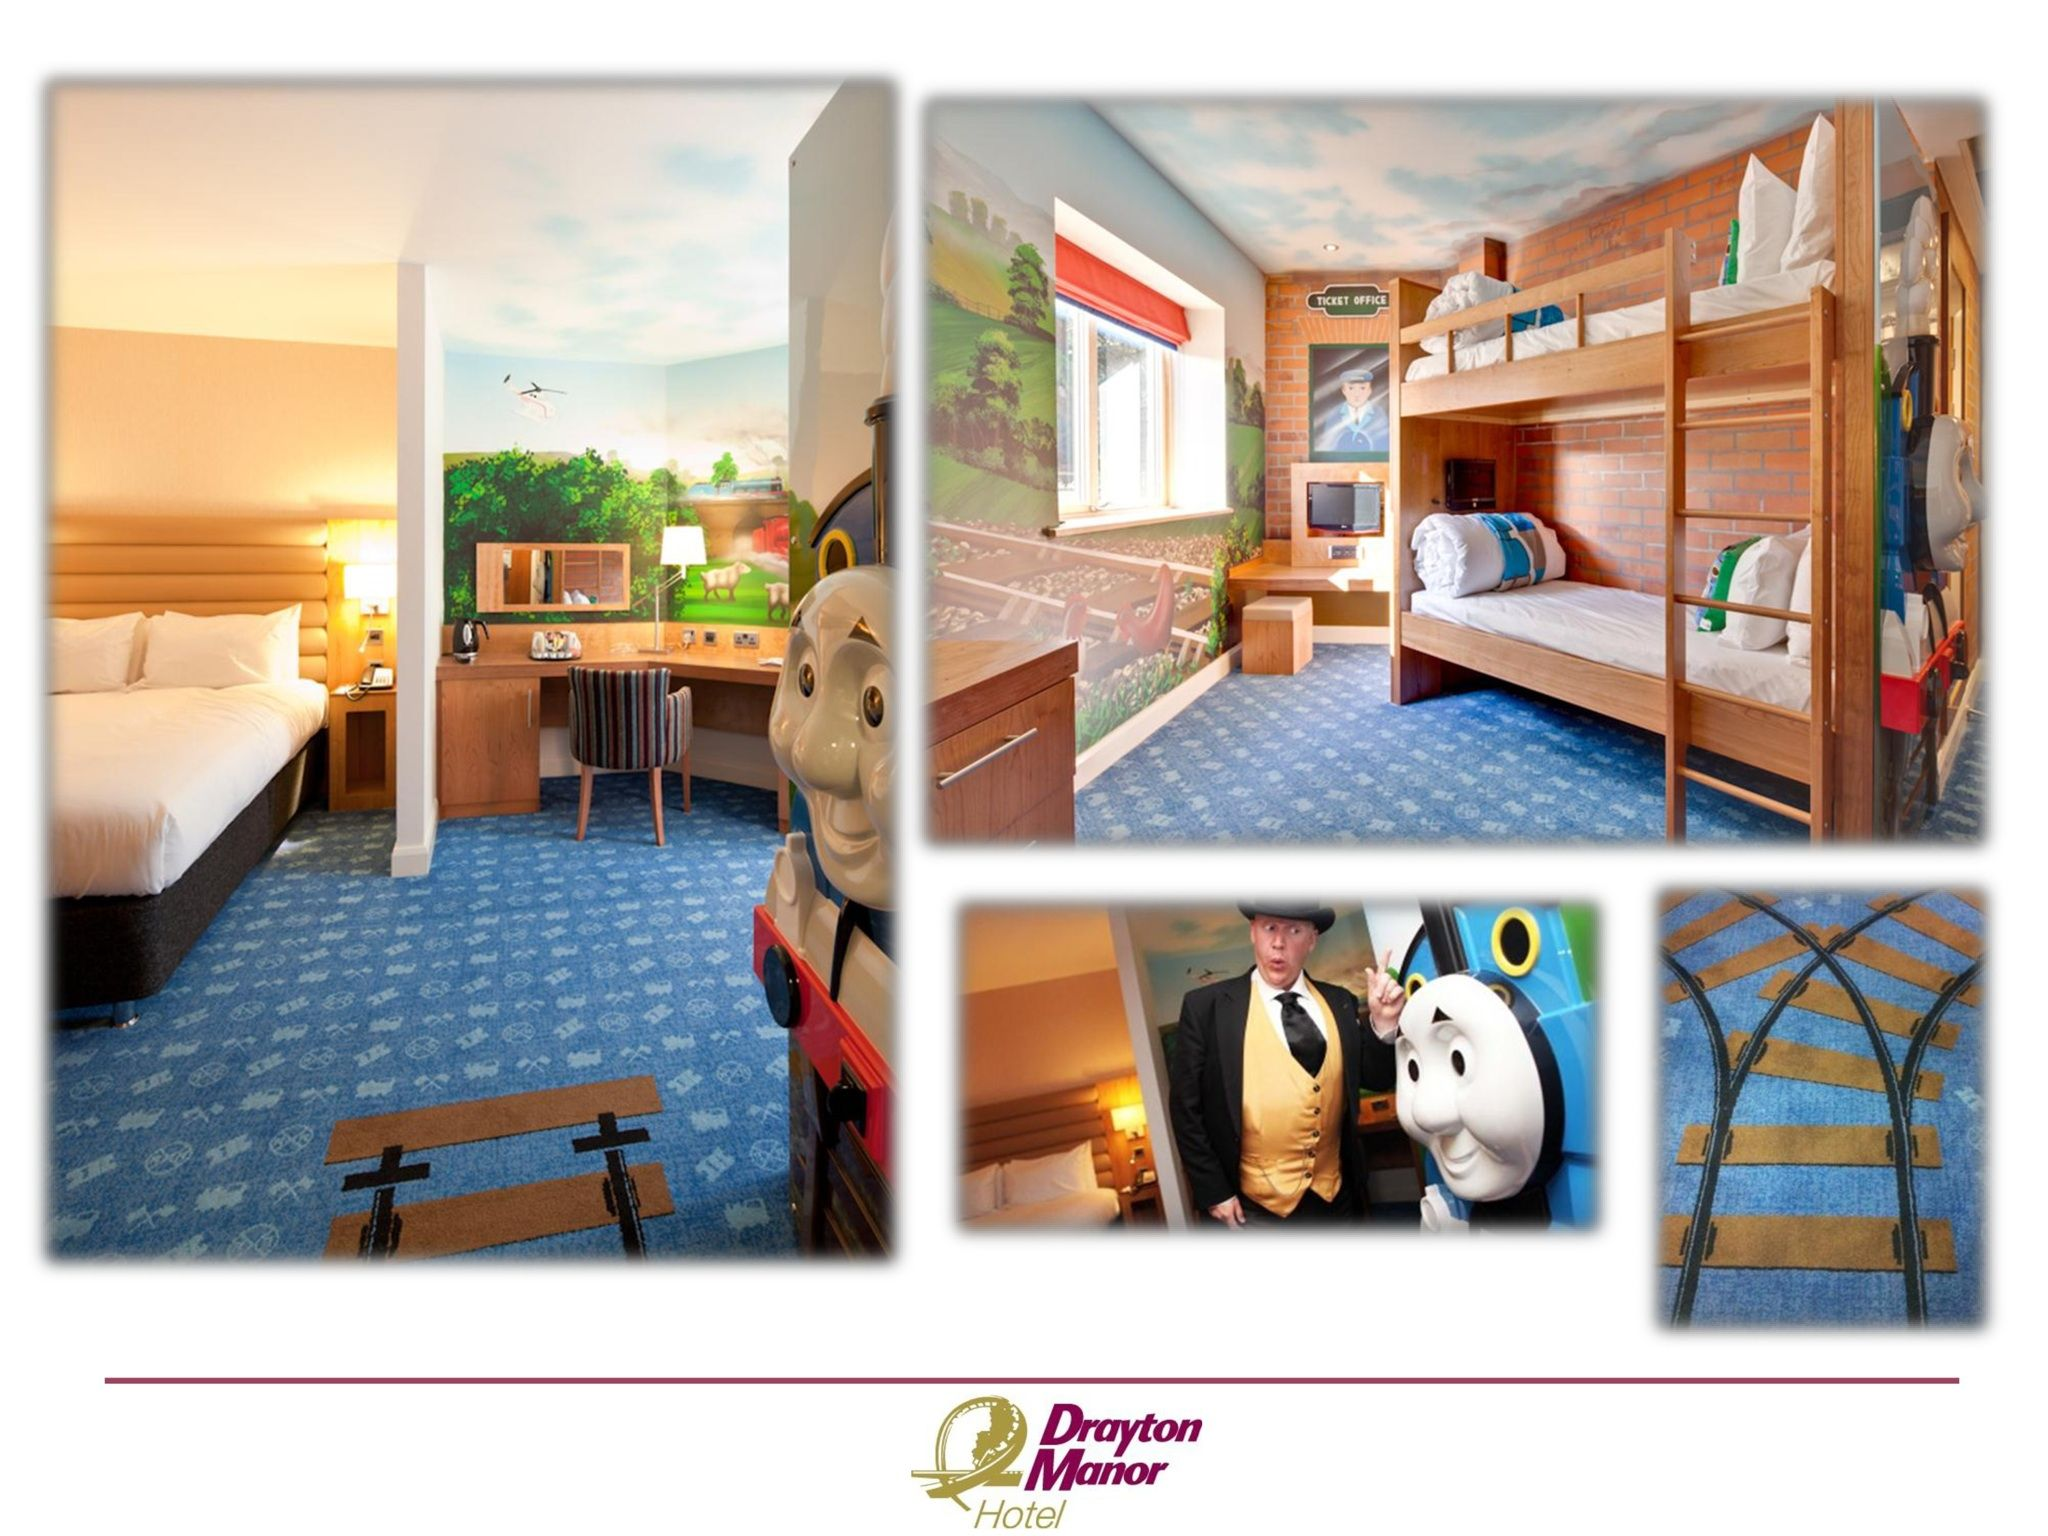 Pin by Drayton Manor Hotel on Thomas and Friends themed rooms ...